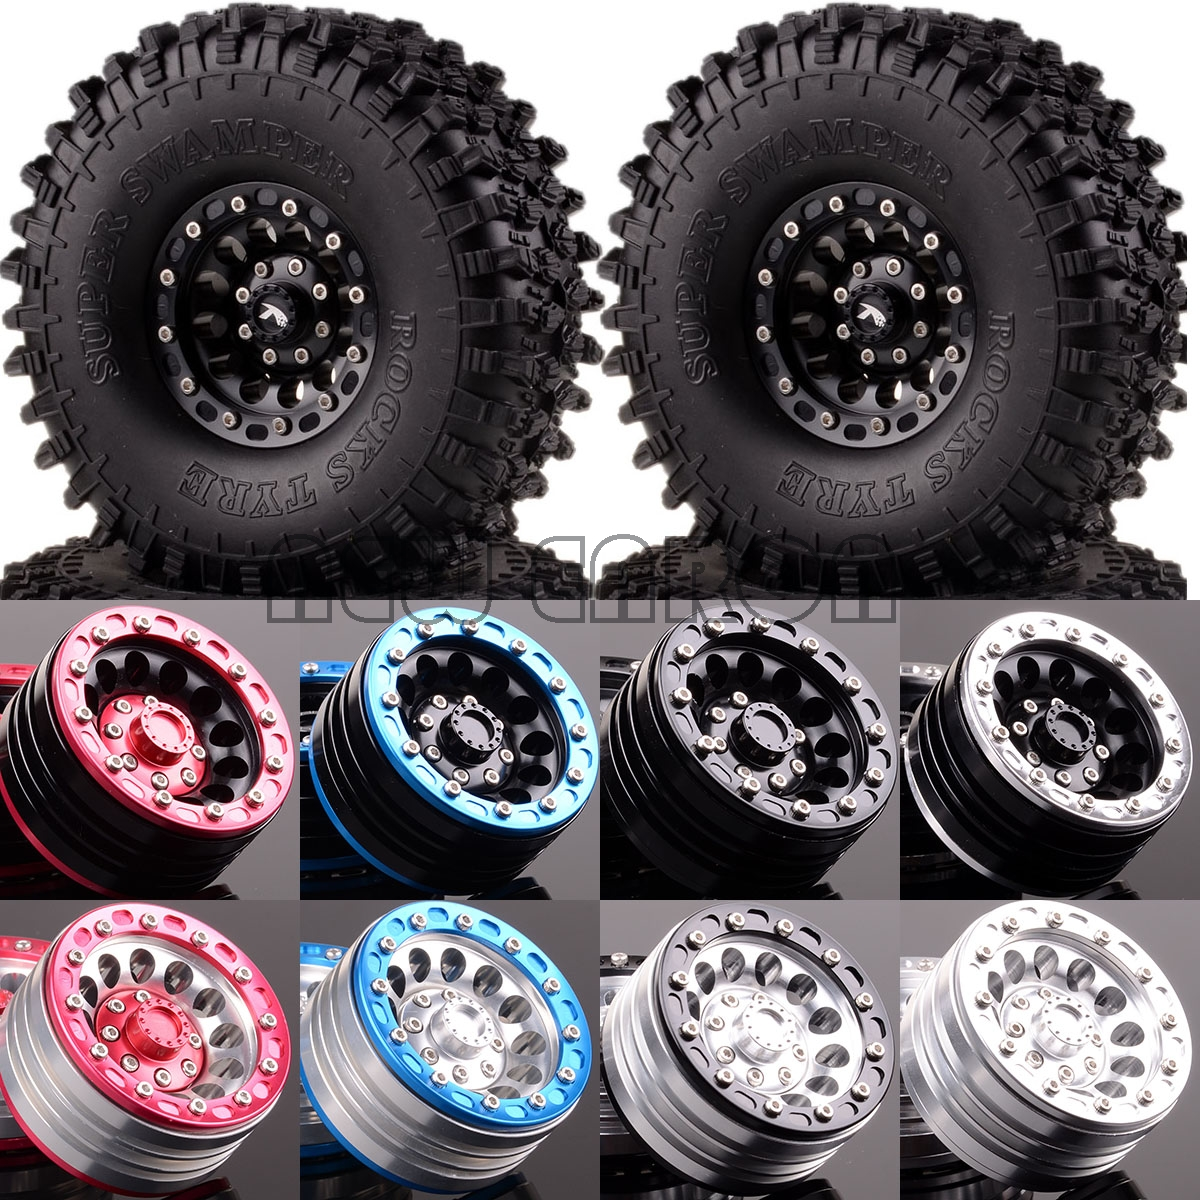 NEW ENRON 1 10 4P RC 1 10 Rock Crawler 1 9 Metal Wheel 120mm Super